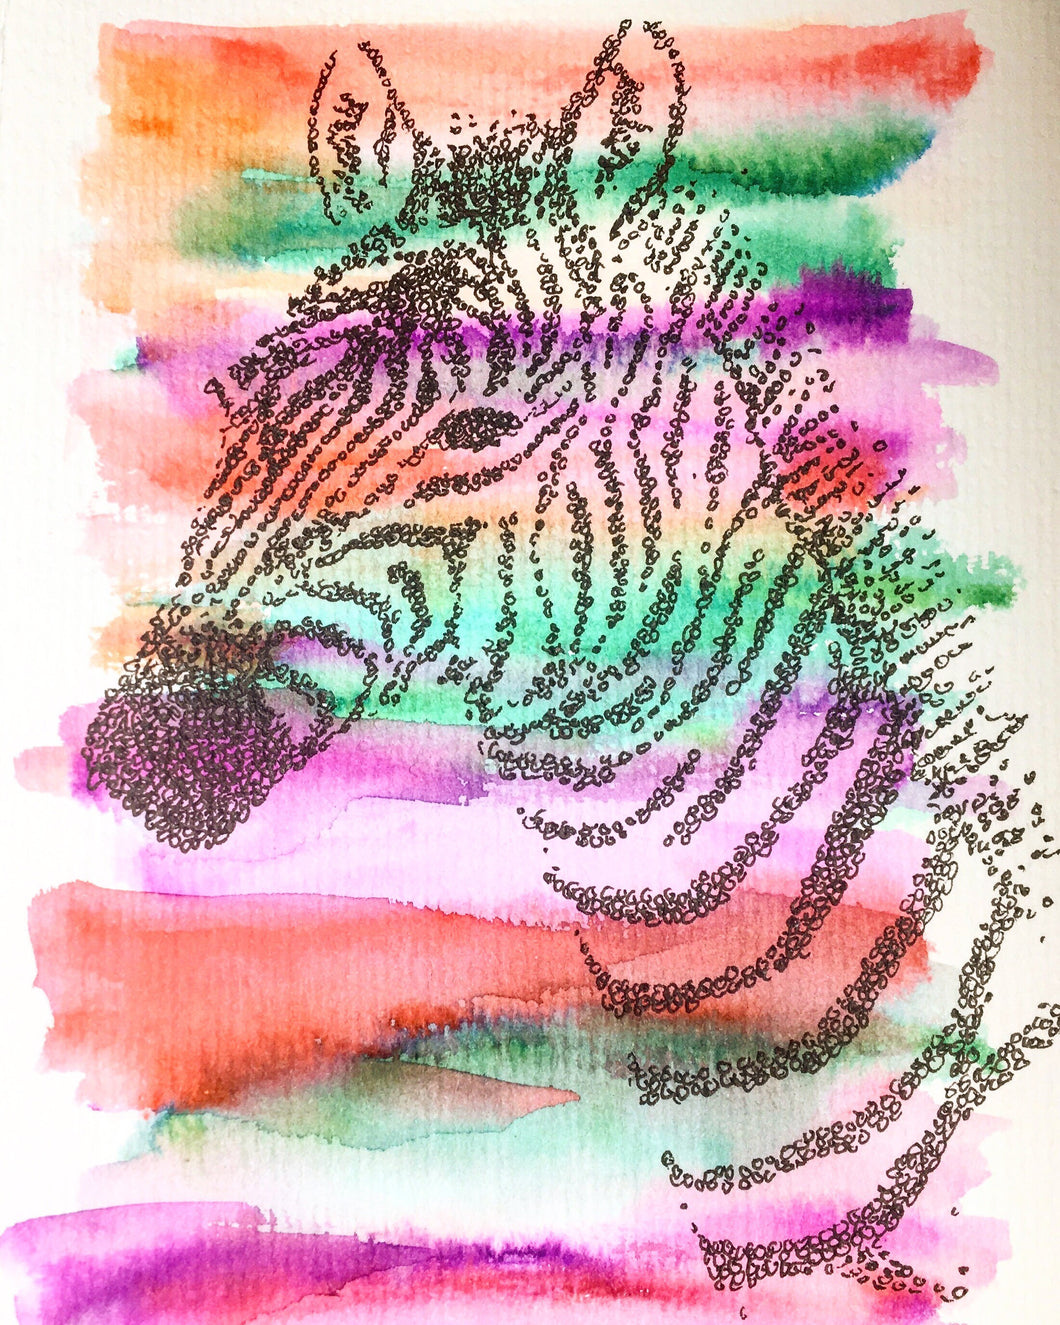 Handpainted Greeting Card/Original Artwork - Abstract Zebra - eDgE dEsiGn London